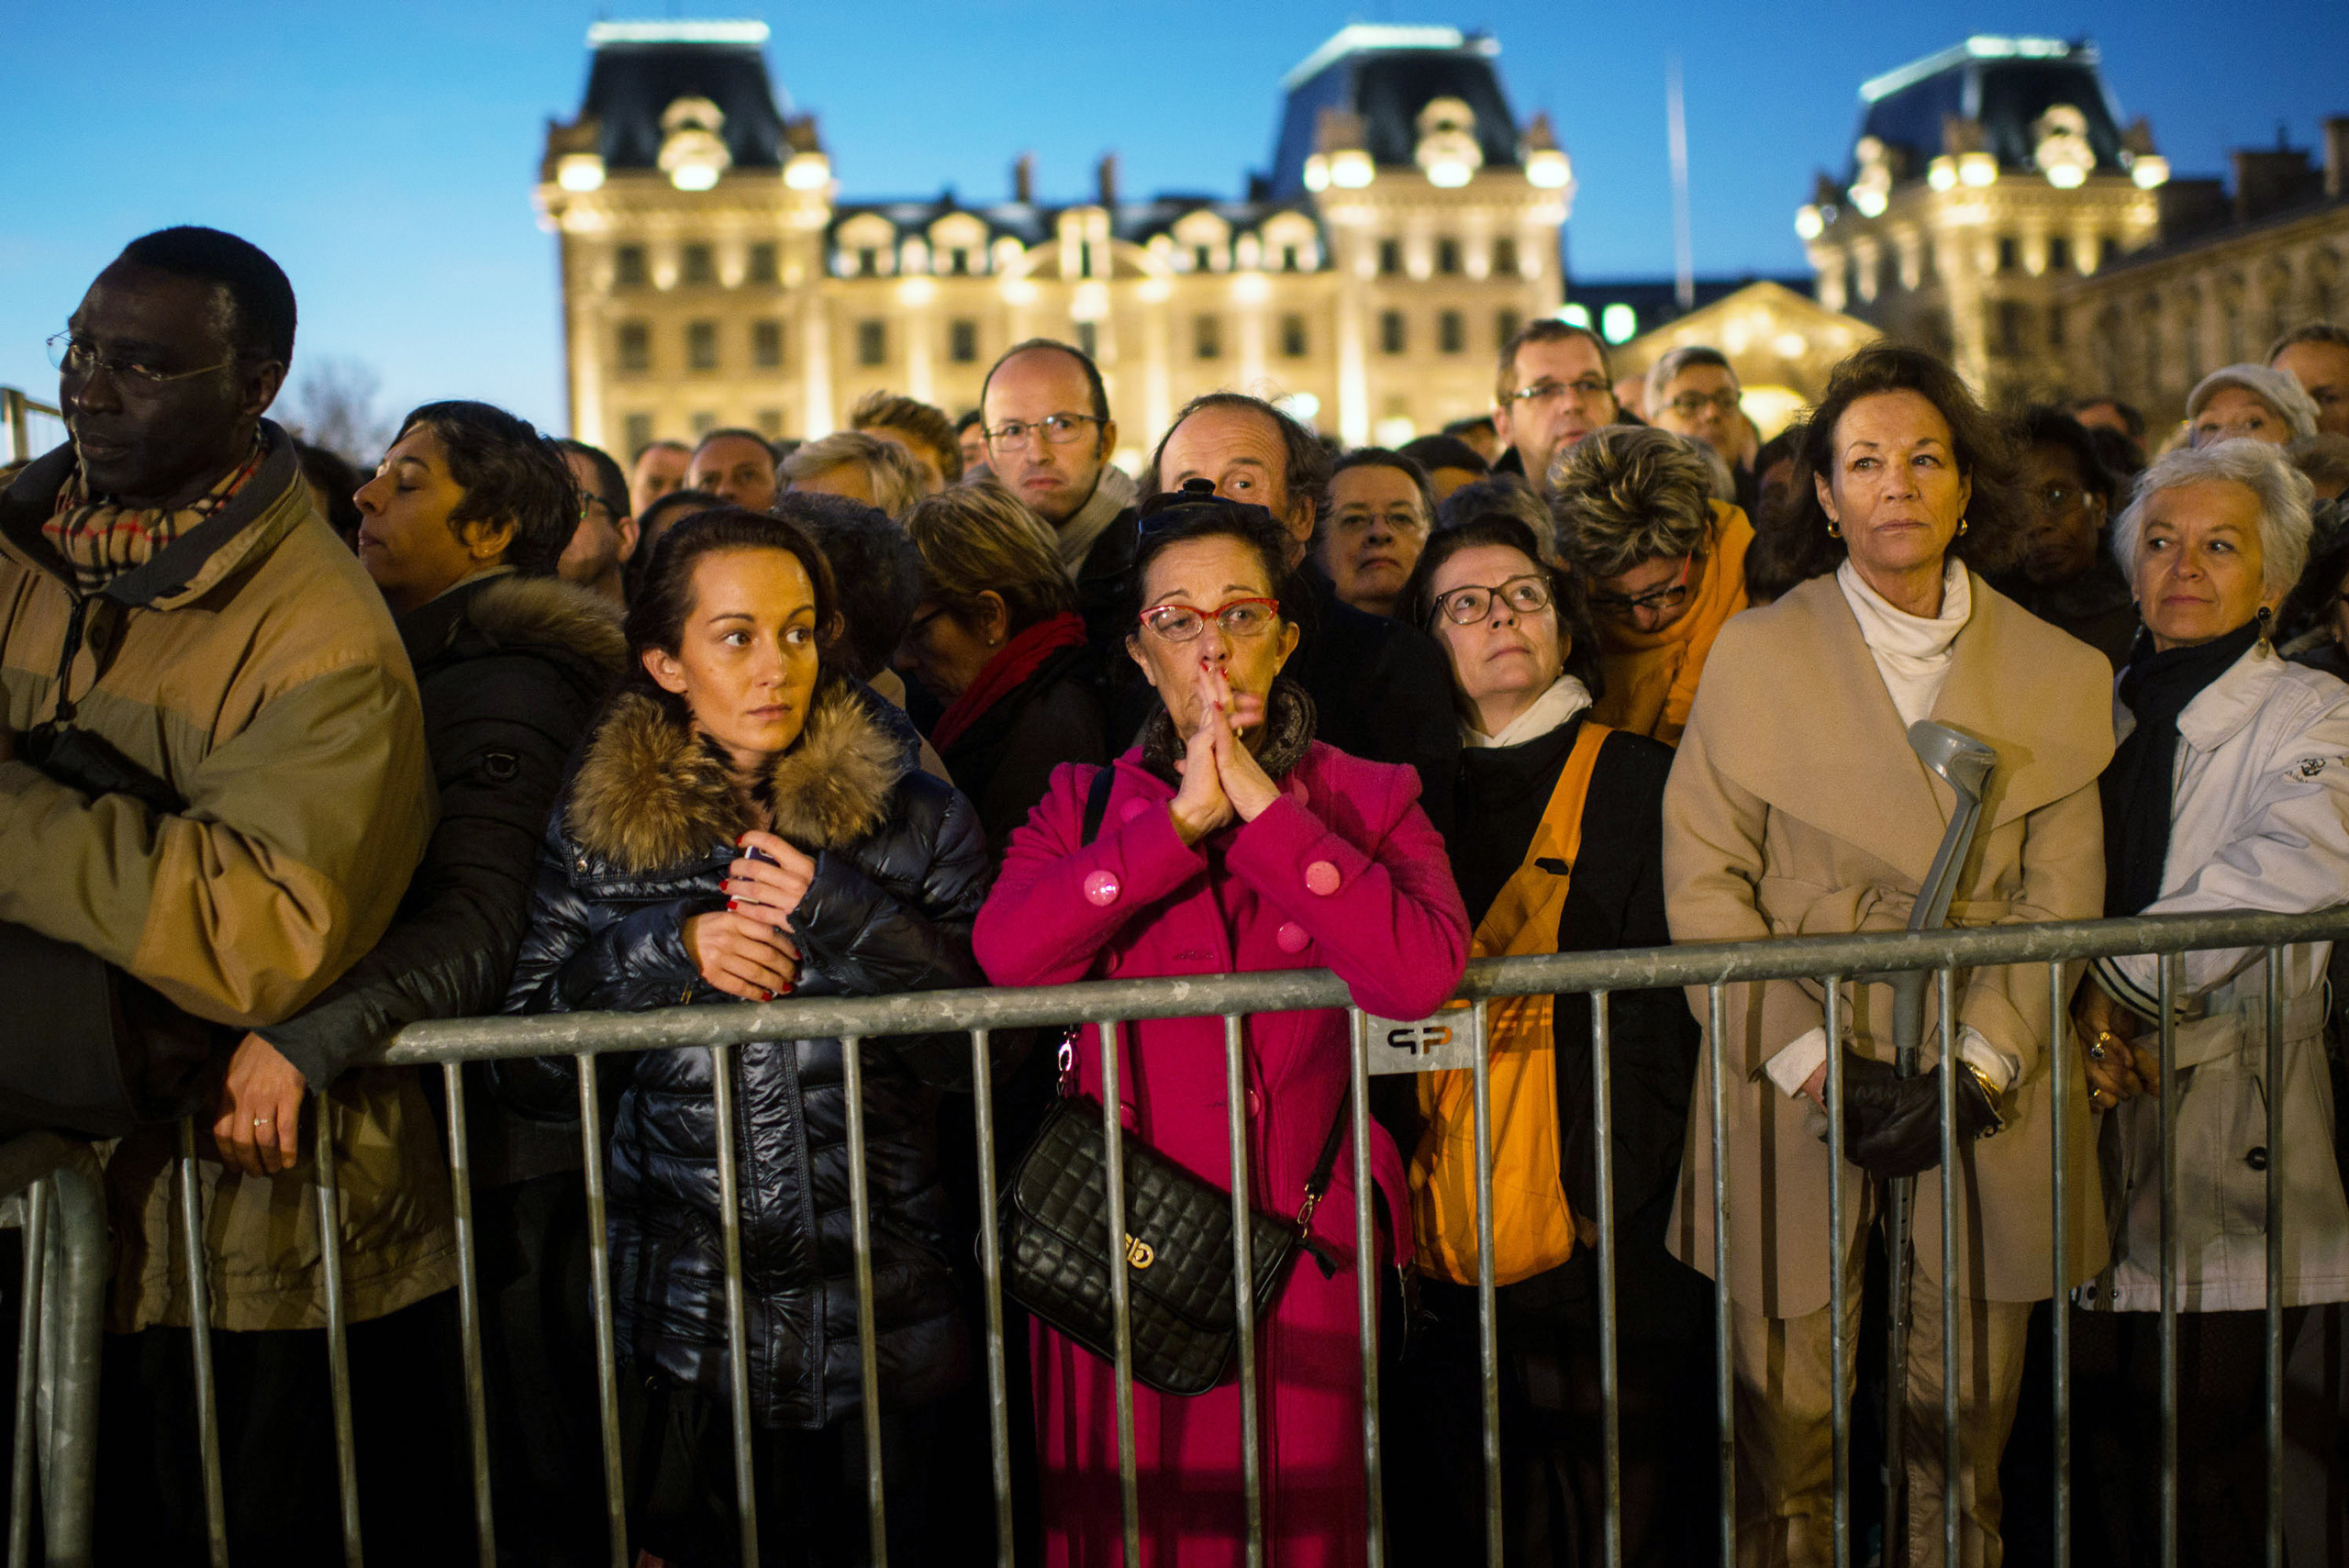 People gather outside of Notre Dame cathedral ahead of a ceremony in memory of the victims of the terrorist attacks in Paris on Nov. 15, 2015.